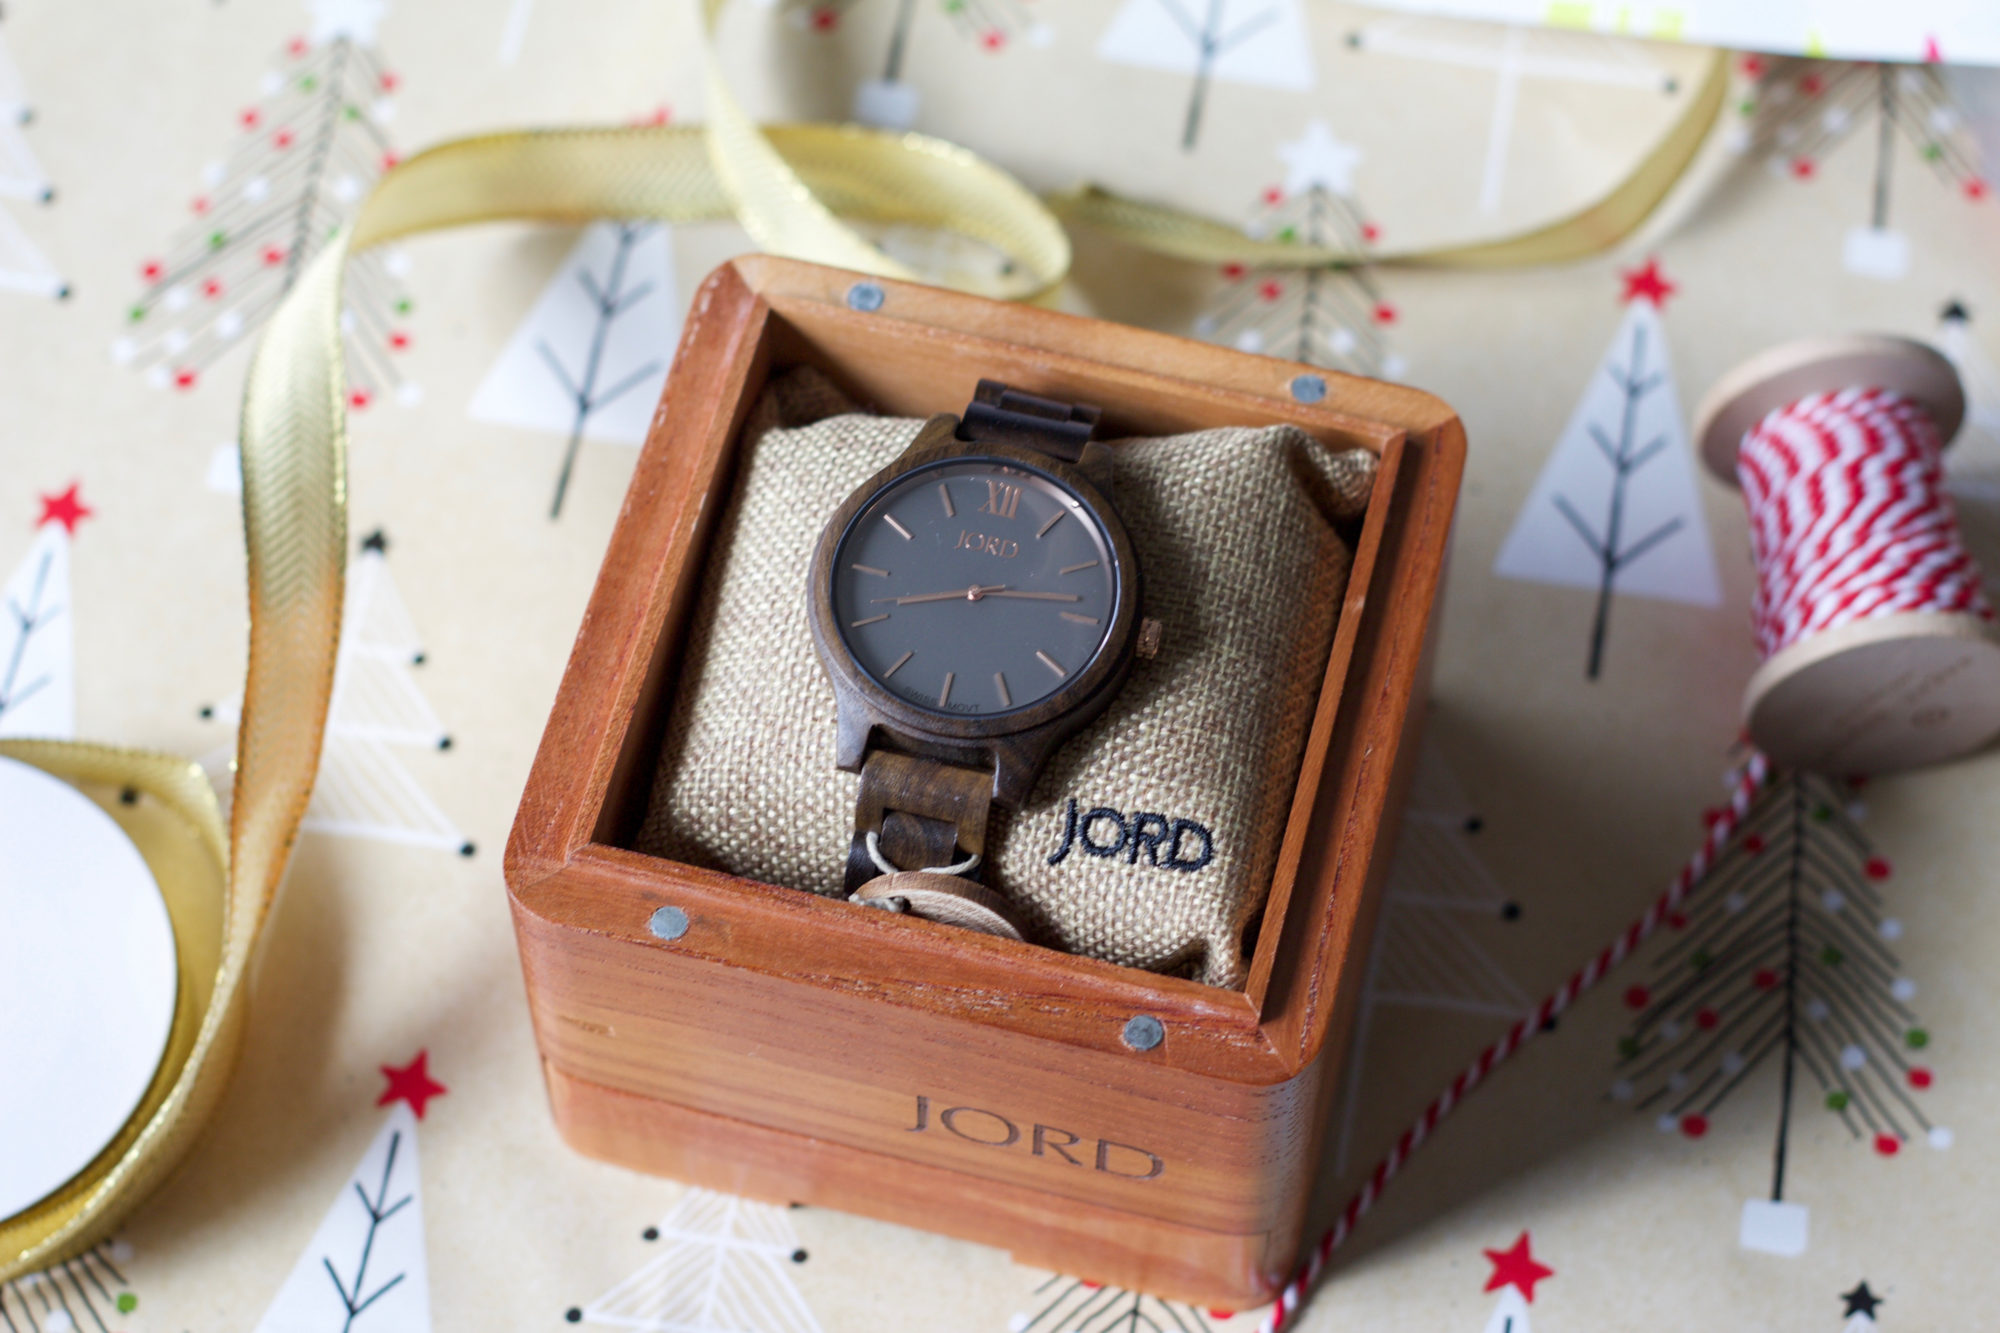 jord-wood-watch-unique-holiday-gift-engraved-1